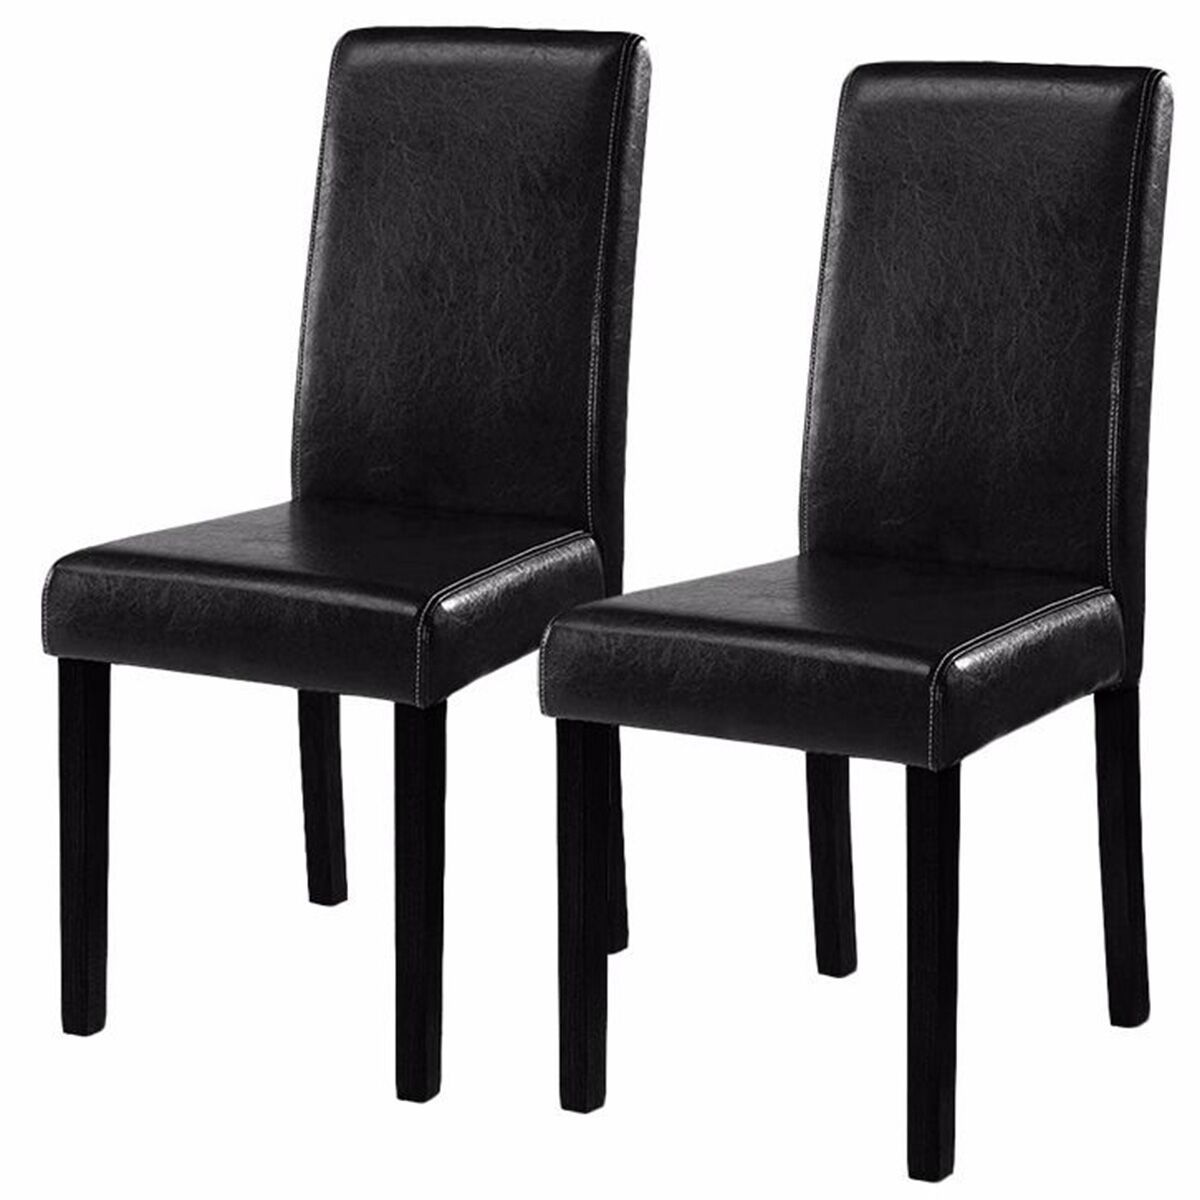 Costway Set of 2 Black Elegant Design Leather Contemporary Dining Chairs Home Room by Costway